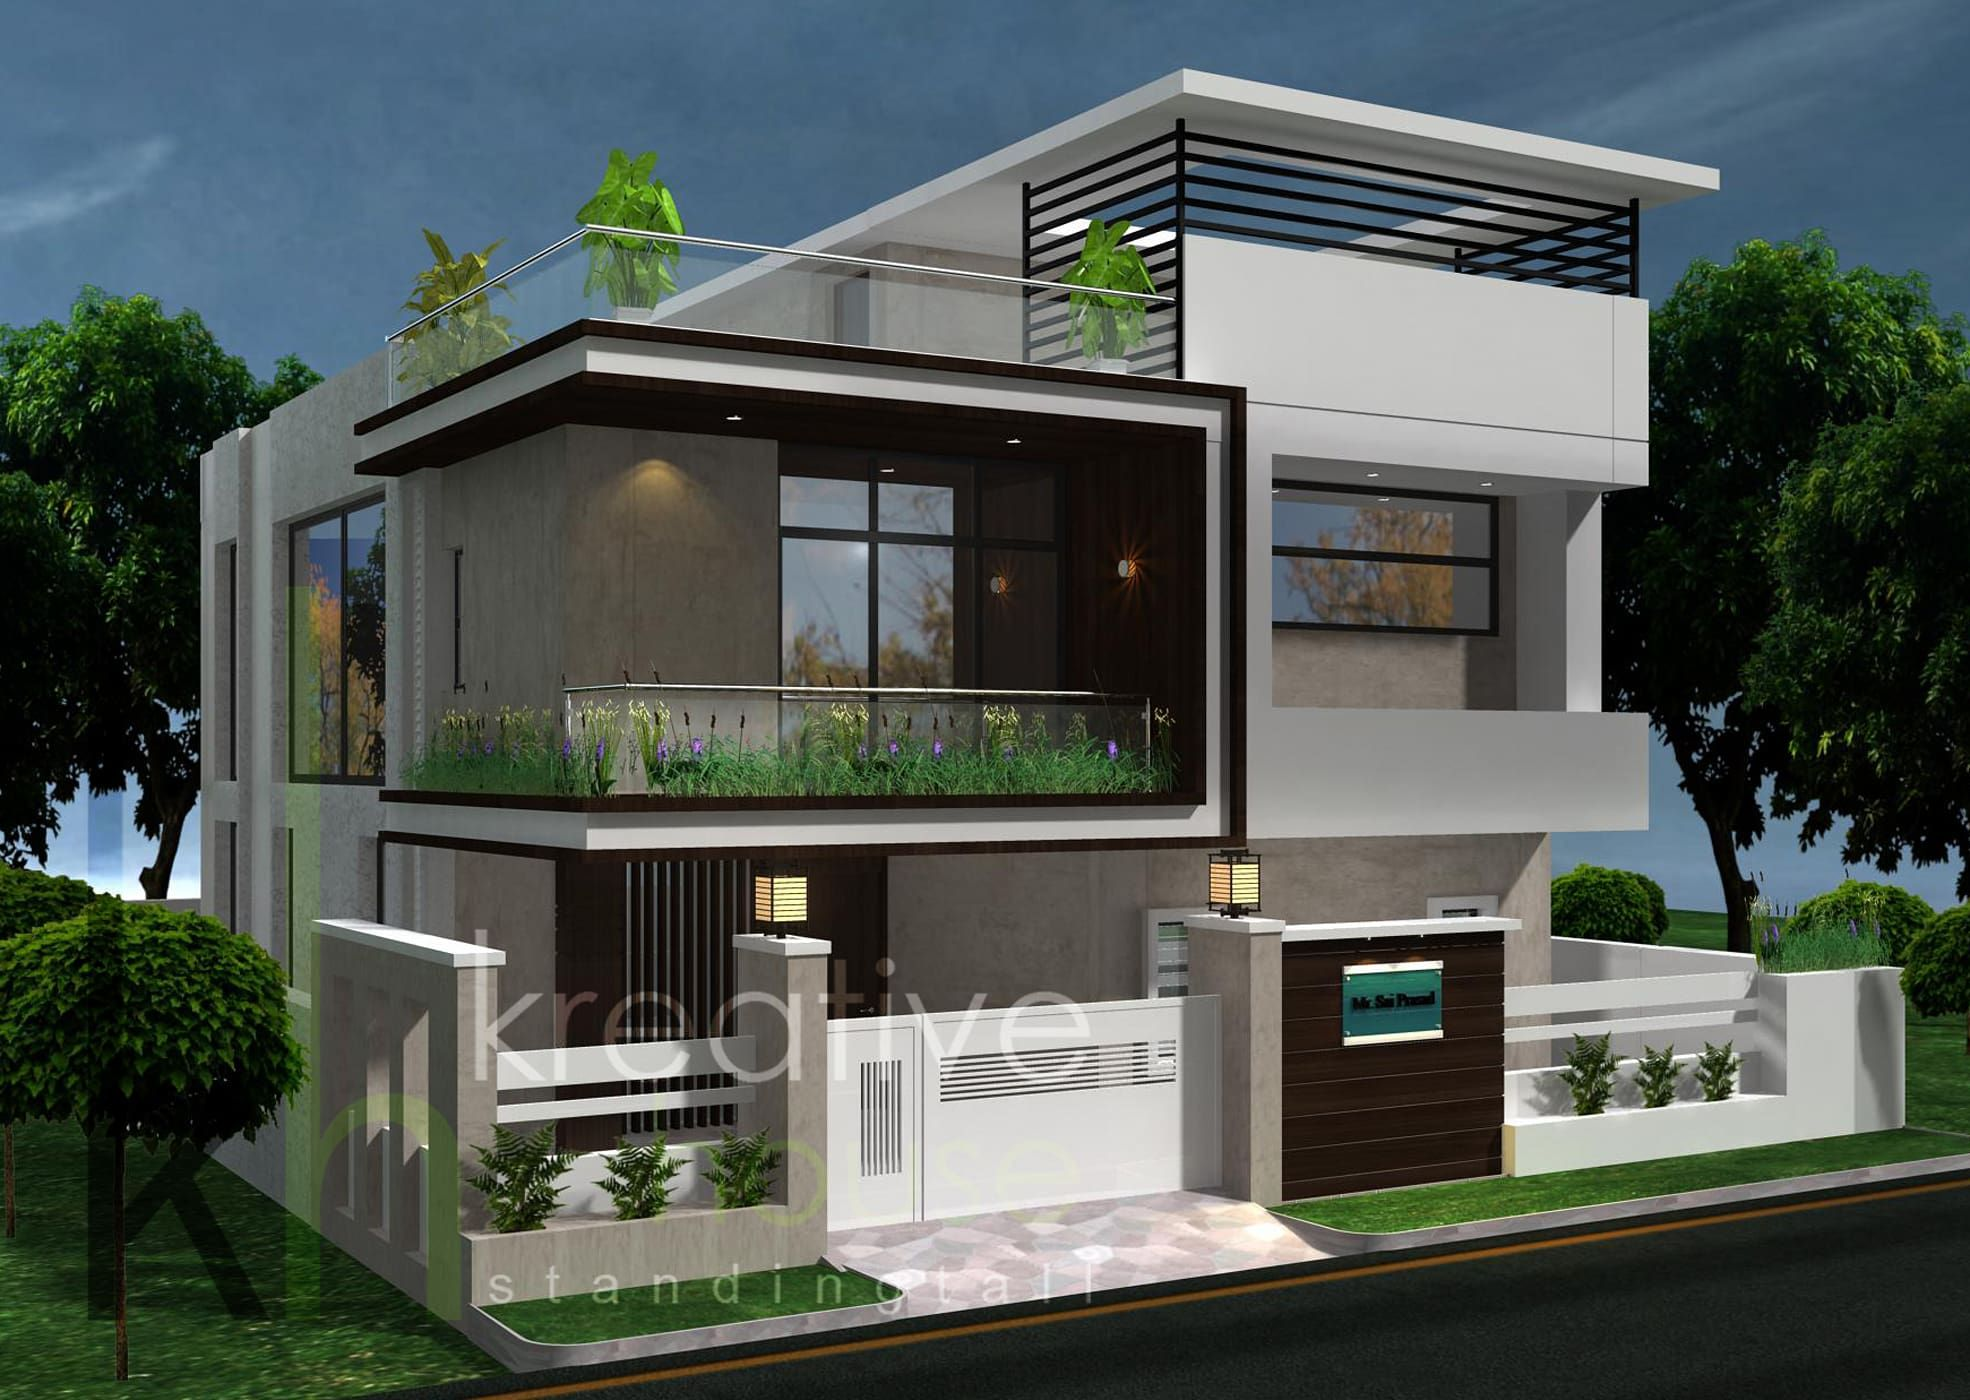 A Modern Home With Artistic Twist Modern Houses By Kreative House Modern Iron Steel Modern House Design Modern House House Design Pictures